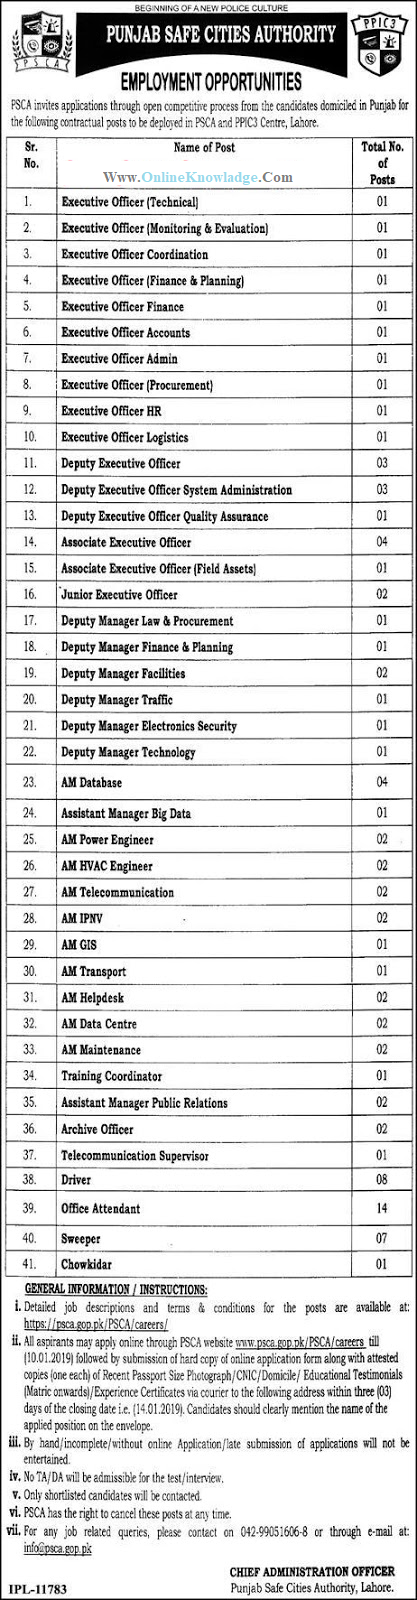 Punjab Safe City Authority (PSCA) New Jobs 2019 - Online Apply punjab safe city authority jobs 2019  safe city project lahore jobs 2019  punjab safe city authority online apply  safe city project jobs 2019  safe city lahore jobs 2018-19  www.psca.gov.pk jobs 2018  punjab safe city authority jobs 2019 nts  psca jobs 2019